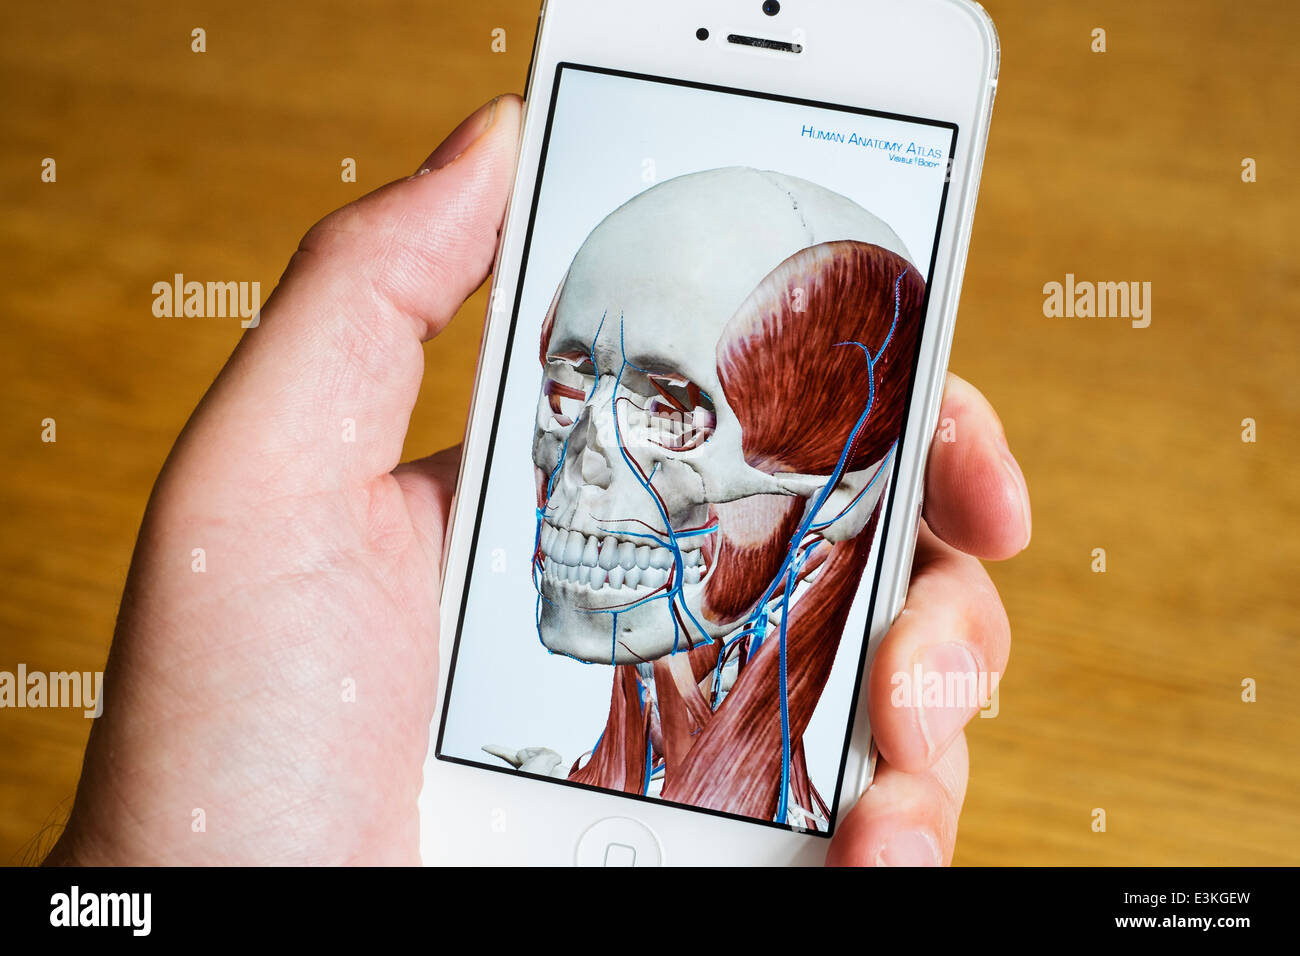 Detail Of Educational Medical 3d Human Anatomy Atlas On An Iphone